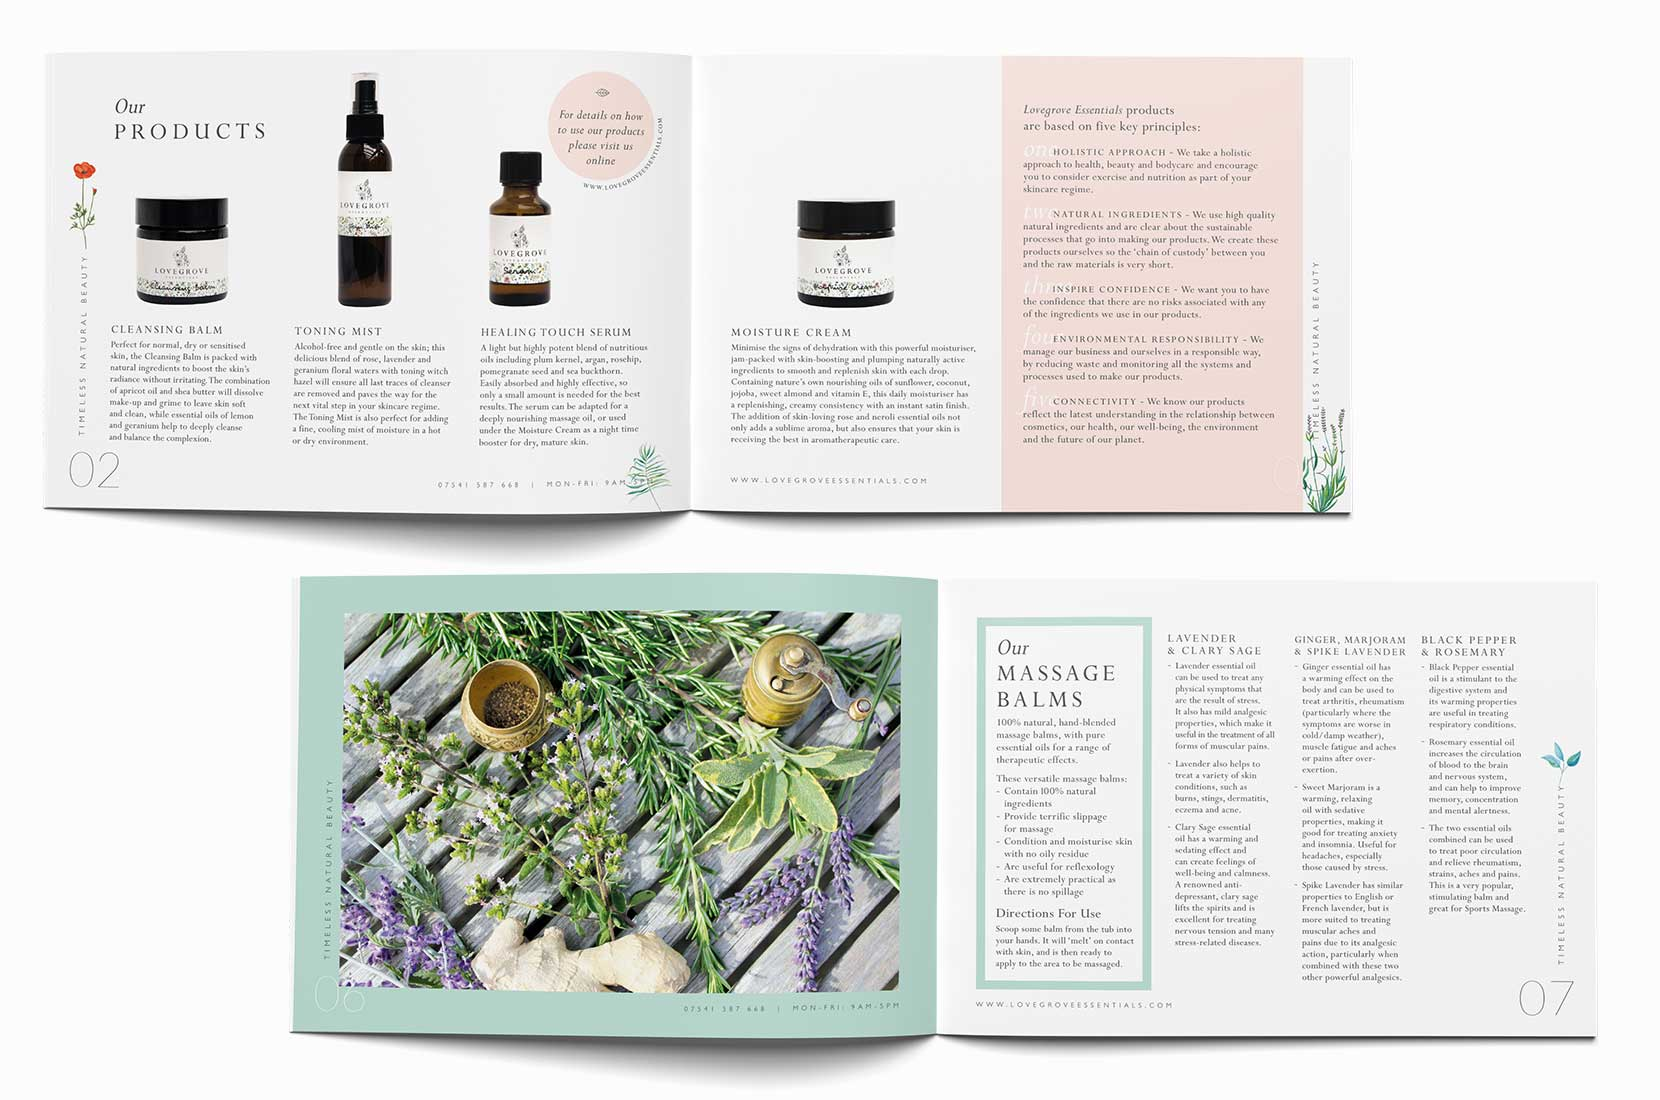 Lovegrove Essentials, Timeless Natural Beauty, Spreads from the professional and retail catalogs picturing products and lavender